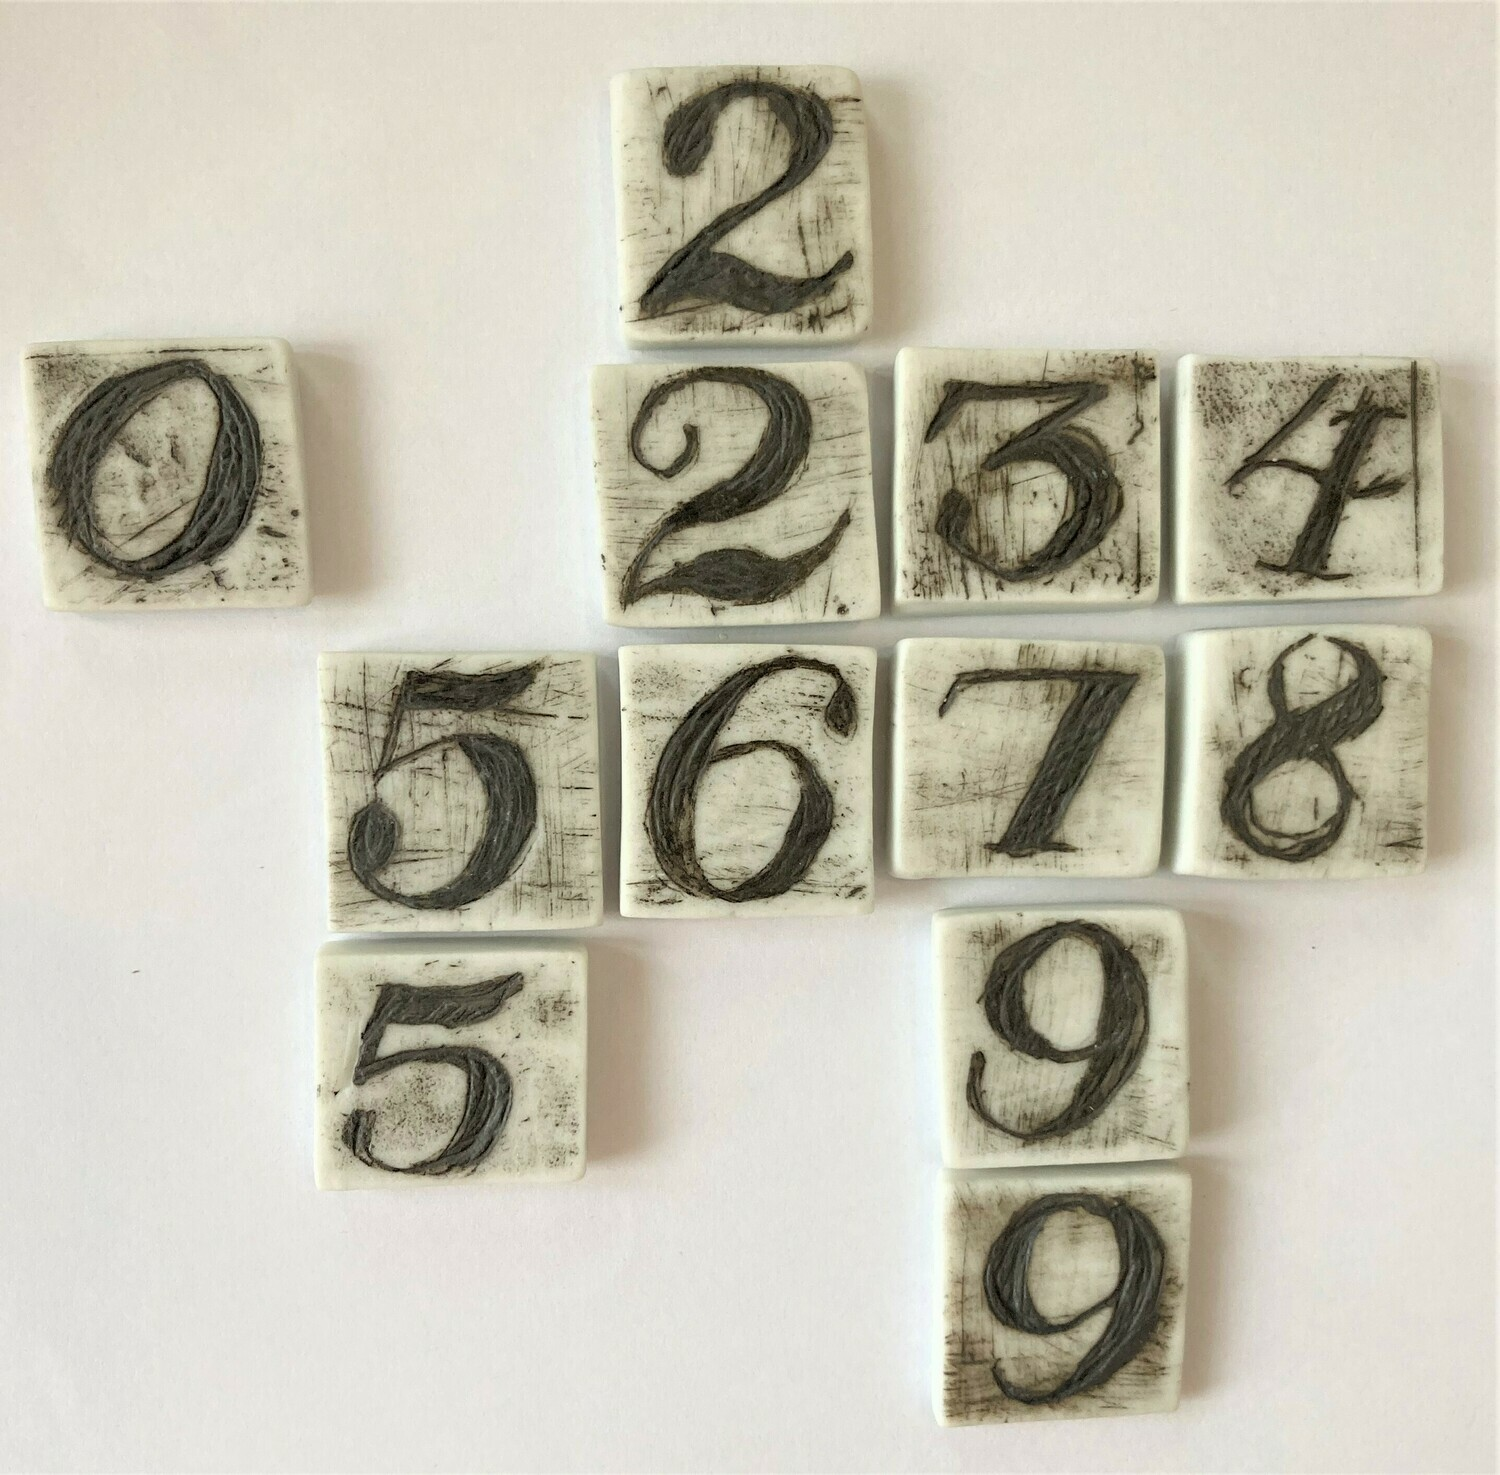 scrabble tile - numbers